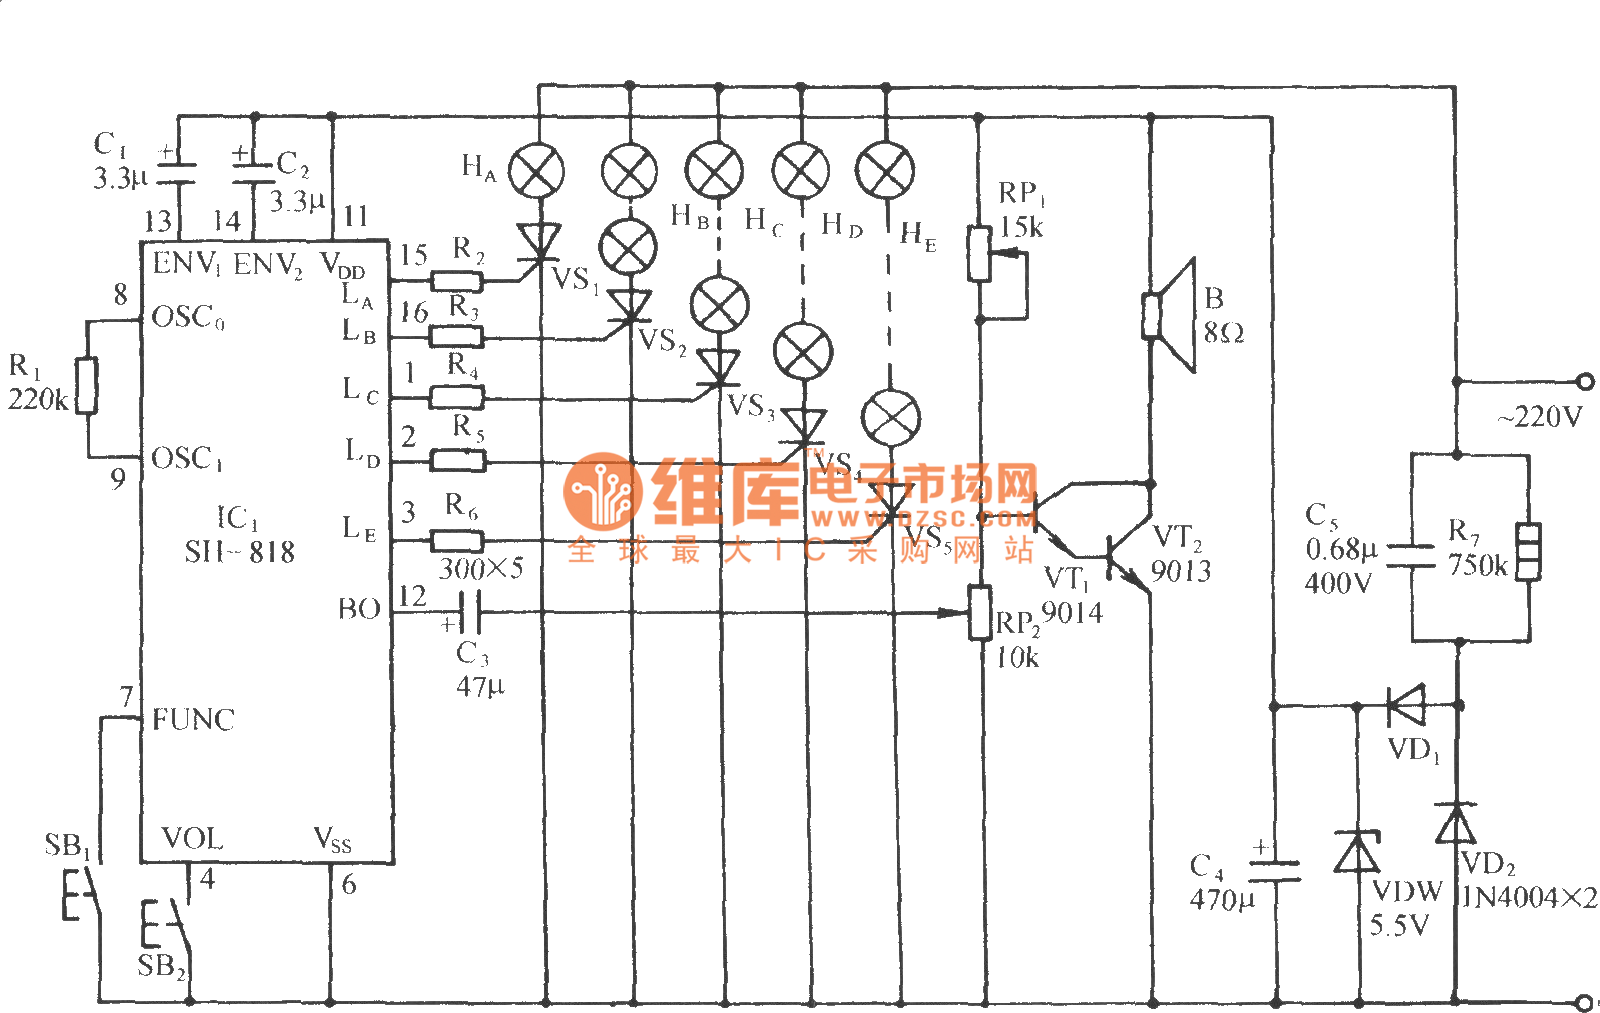 Sh 818 High Quality Dual Tone Seven Functions Color Lamp Control Circuit Diagram